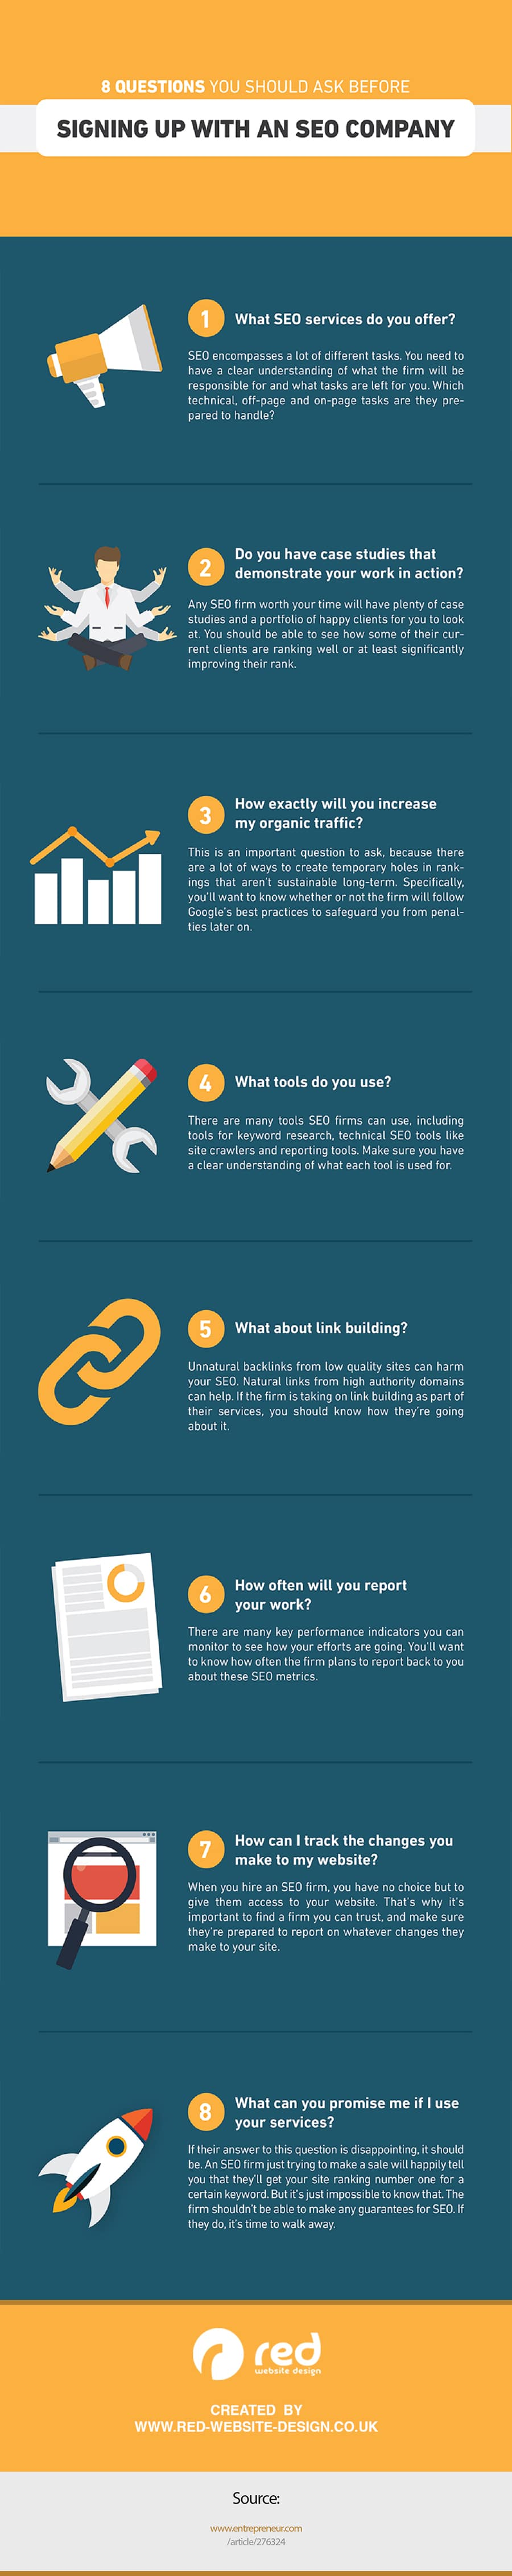 8 Questions To Ask Before Using An SEO Company [Infographic]